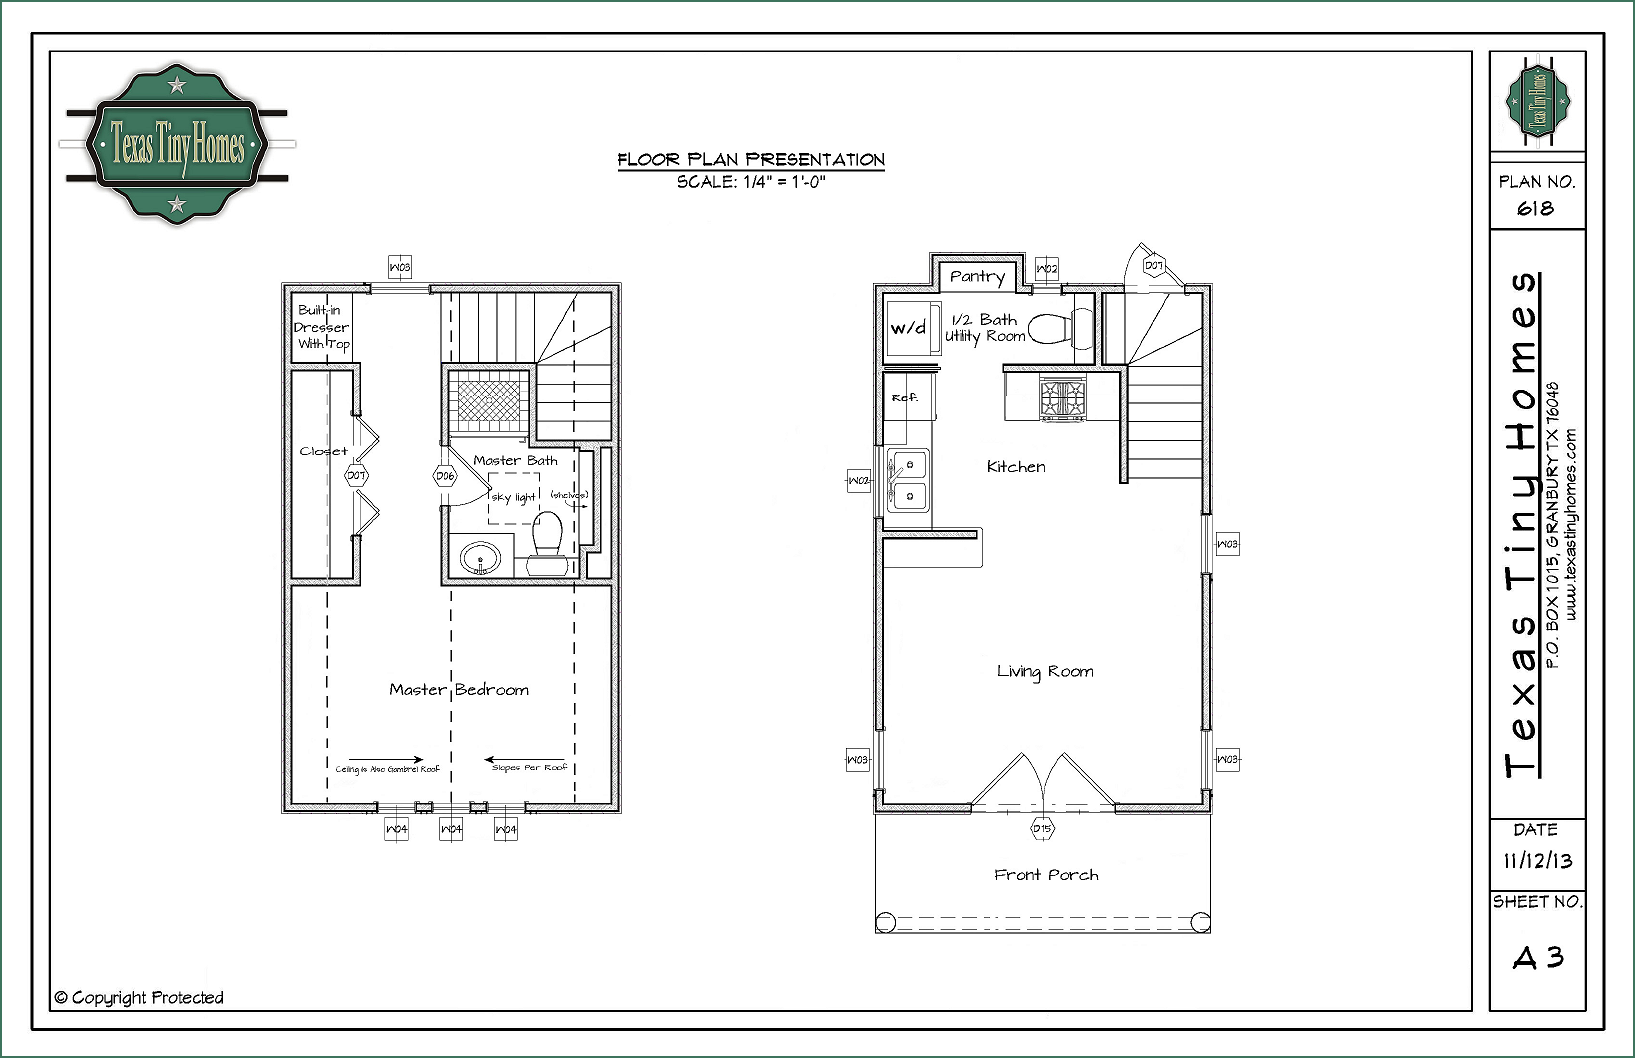 Colorado House Plans texas tiny homes plan 618